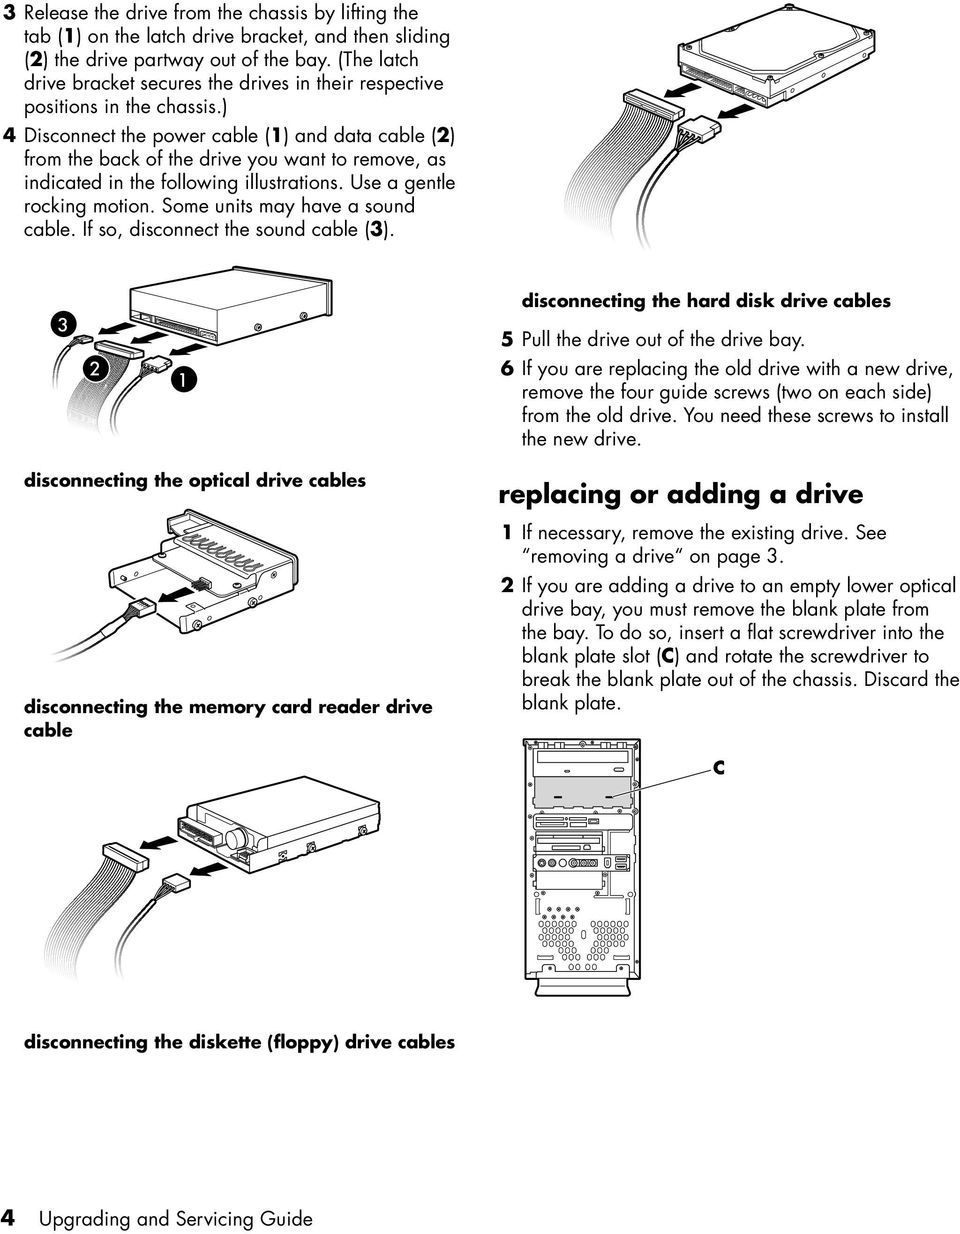 ) 4 Disconnect the power cable (1) and data cable (2) from the back of the drive you want to remove, as indicated in the following illustrations. Use a gentle rocking motion.